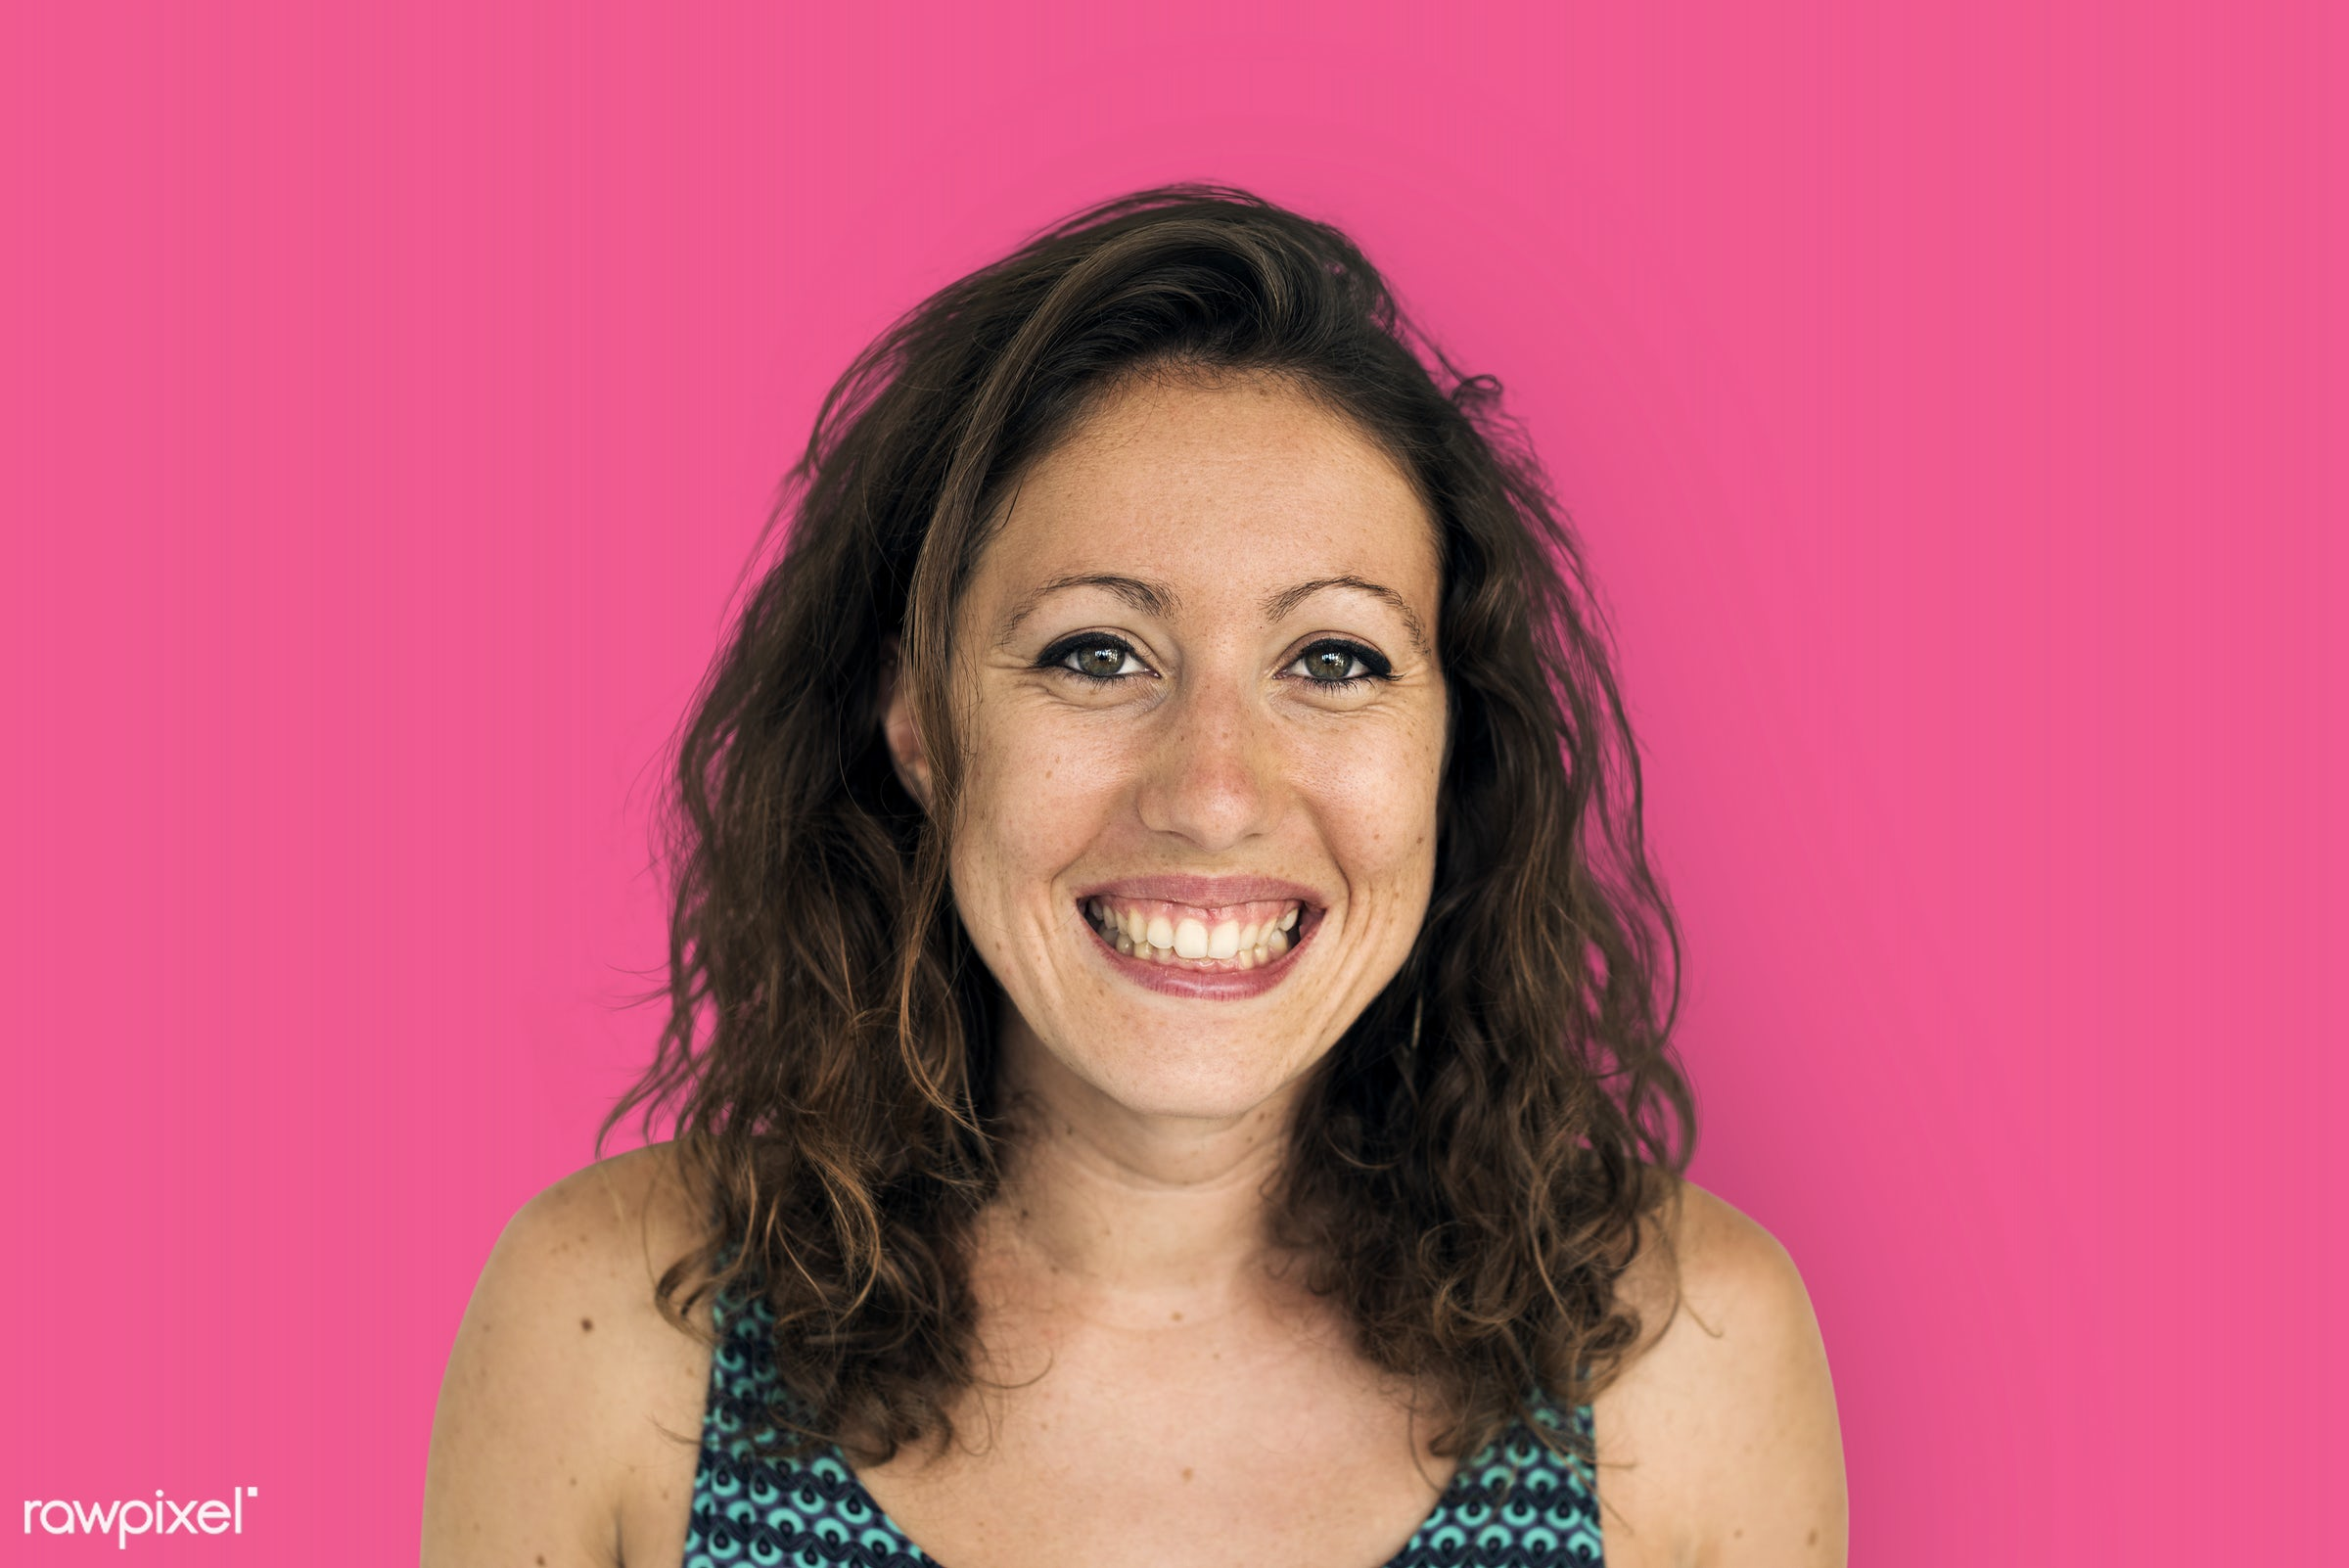 studio, expression, person, people, woman, pink, smile, cheerful, smiling, happiness, portrait, emotion, charming, face, joy...